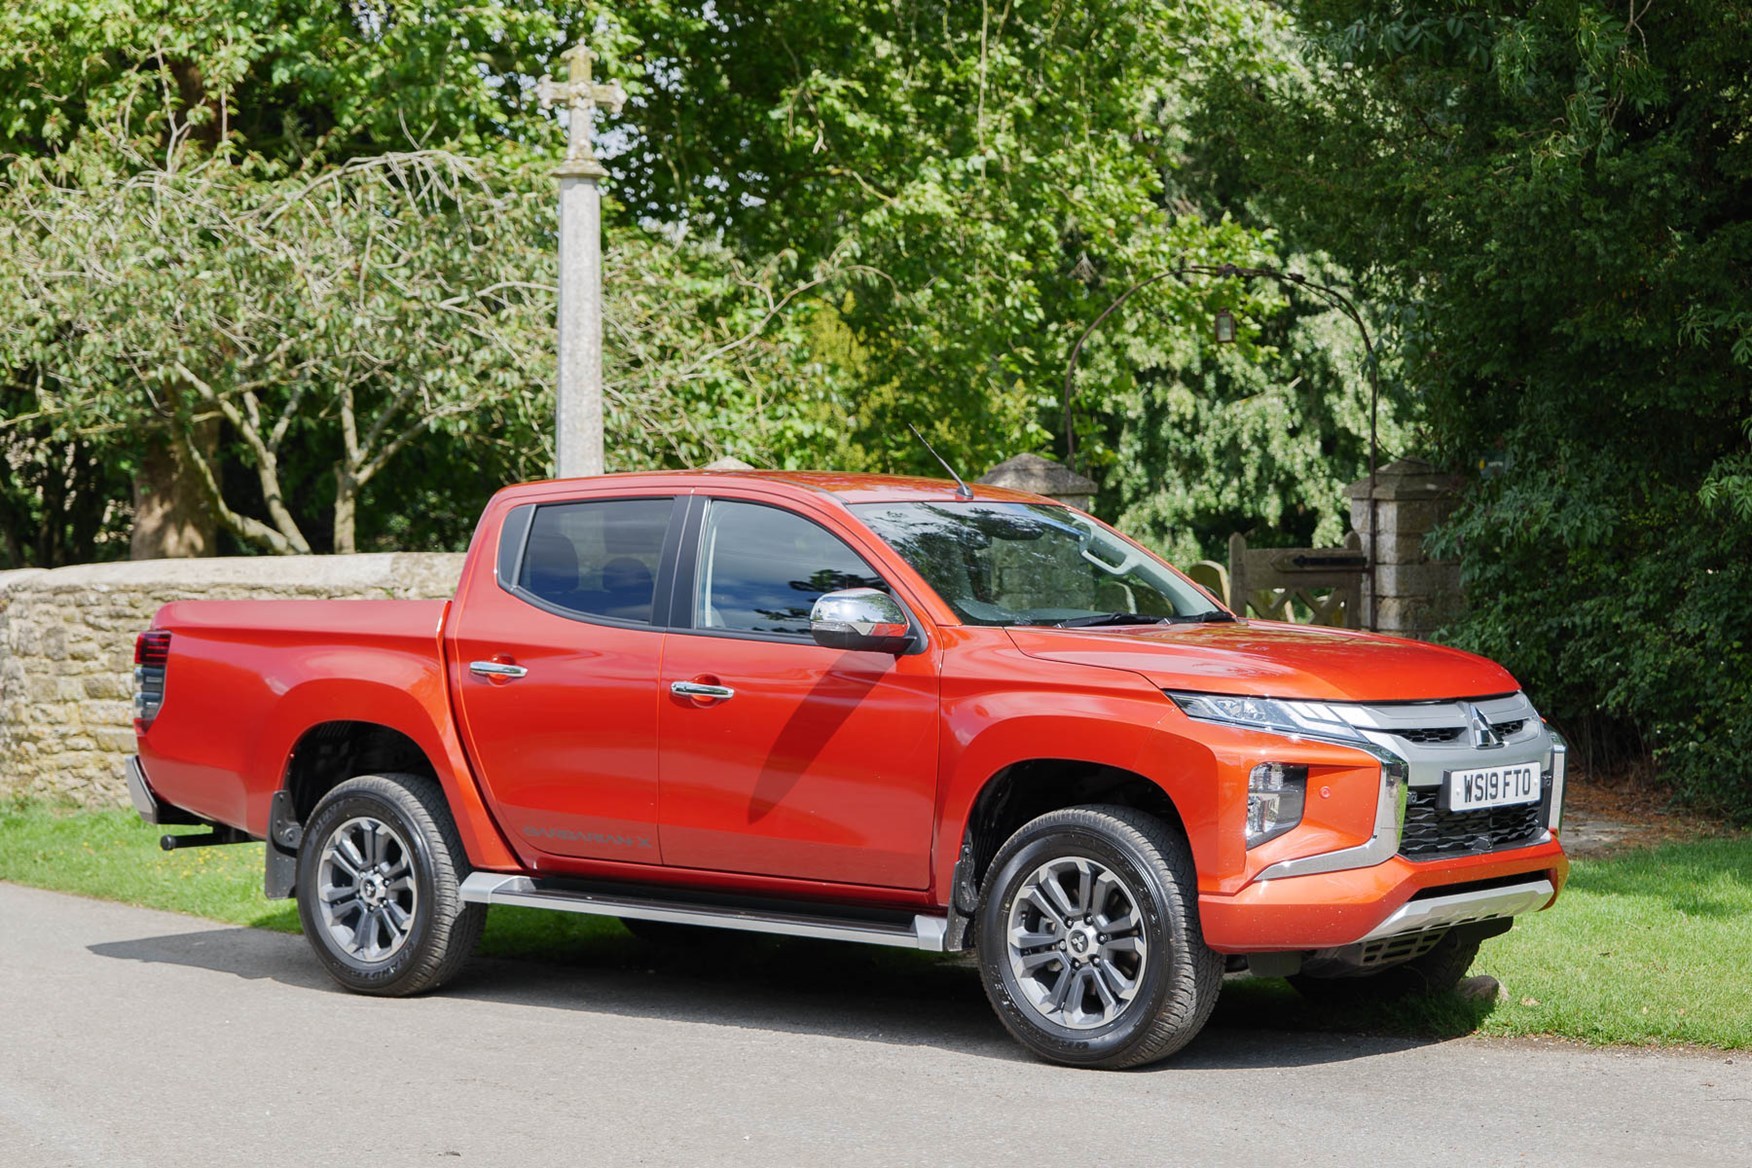 2019 Mitsubishi L200 Series 6, Sunflare Orange Barbarian X in a small village